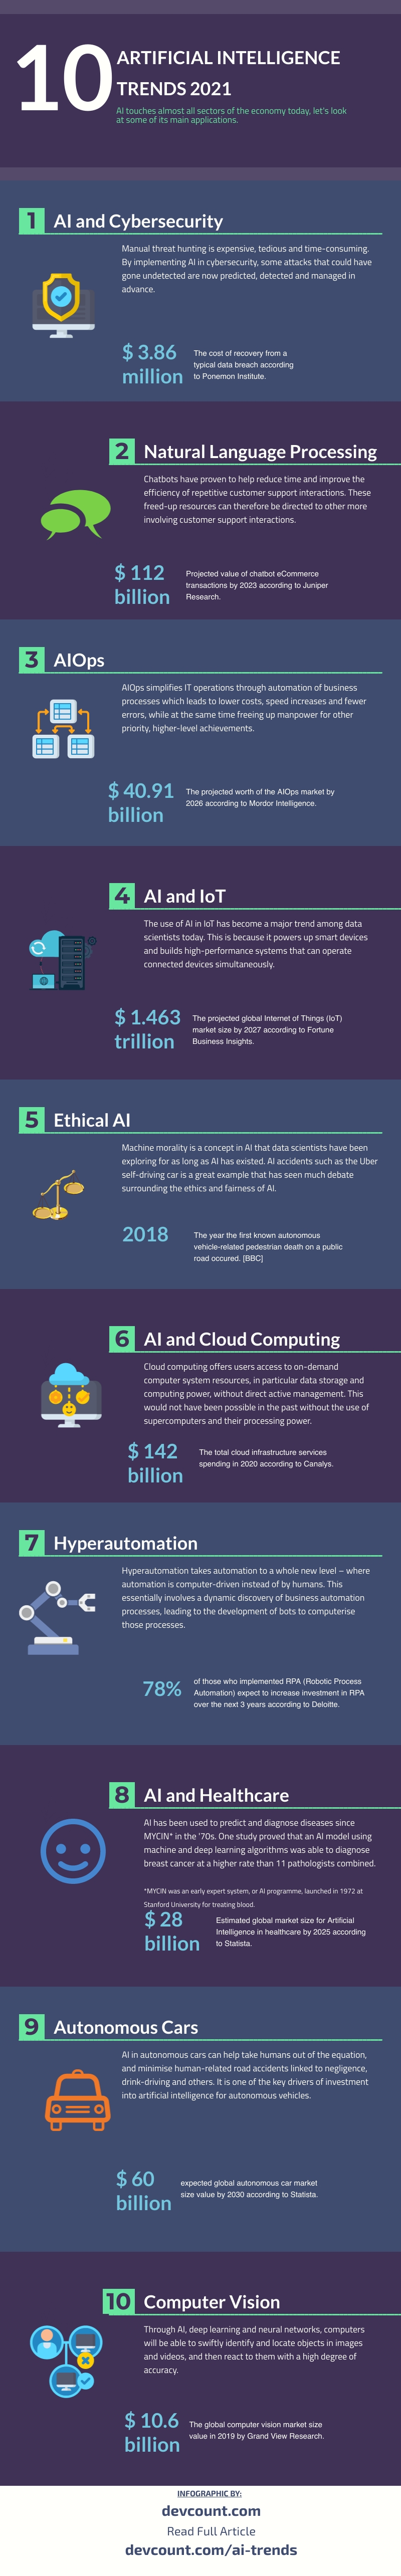 AI Trends Infographic